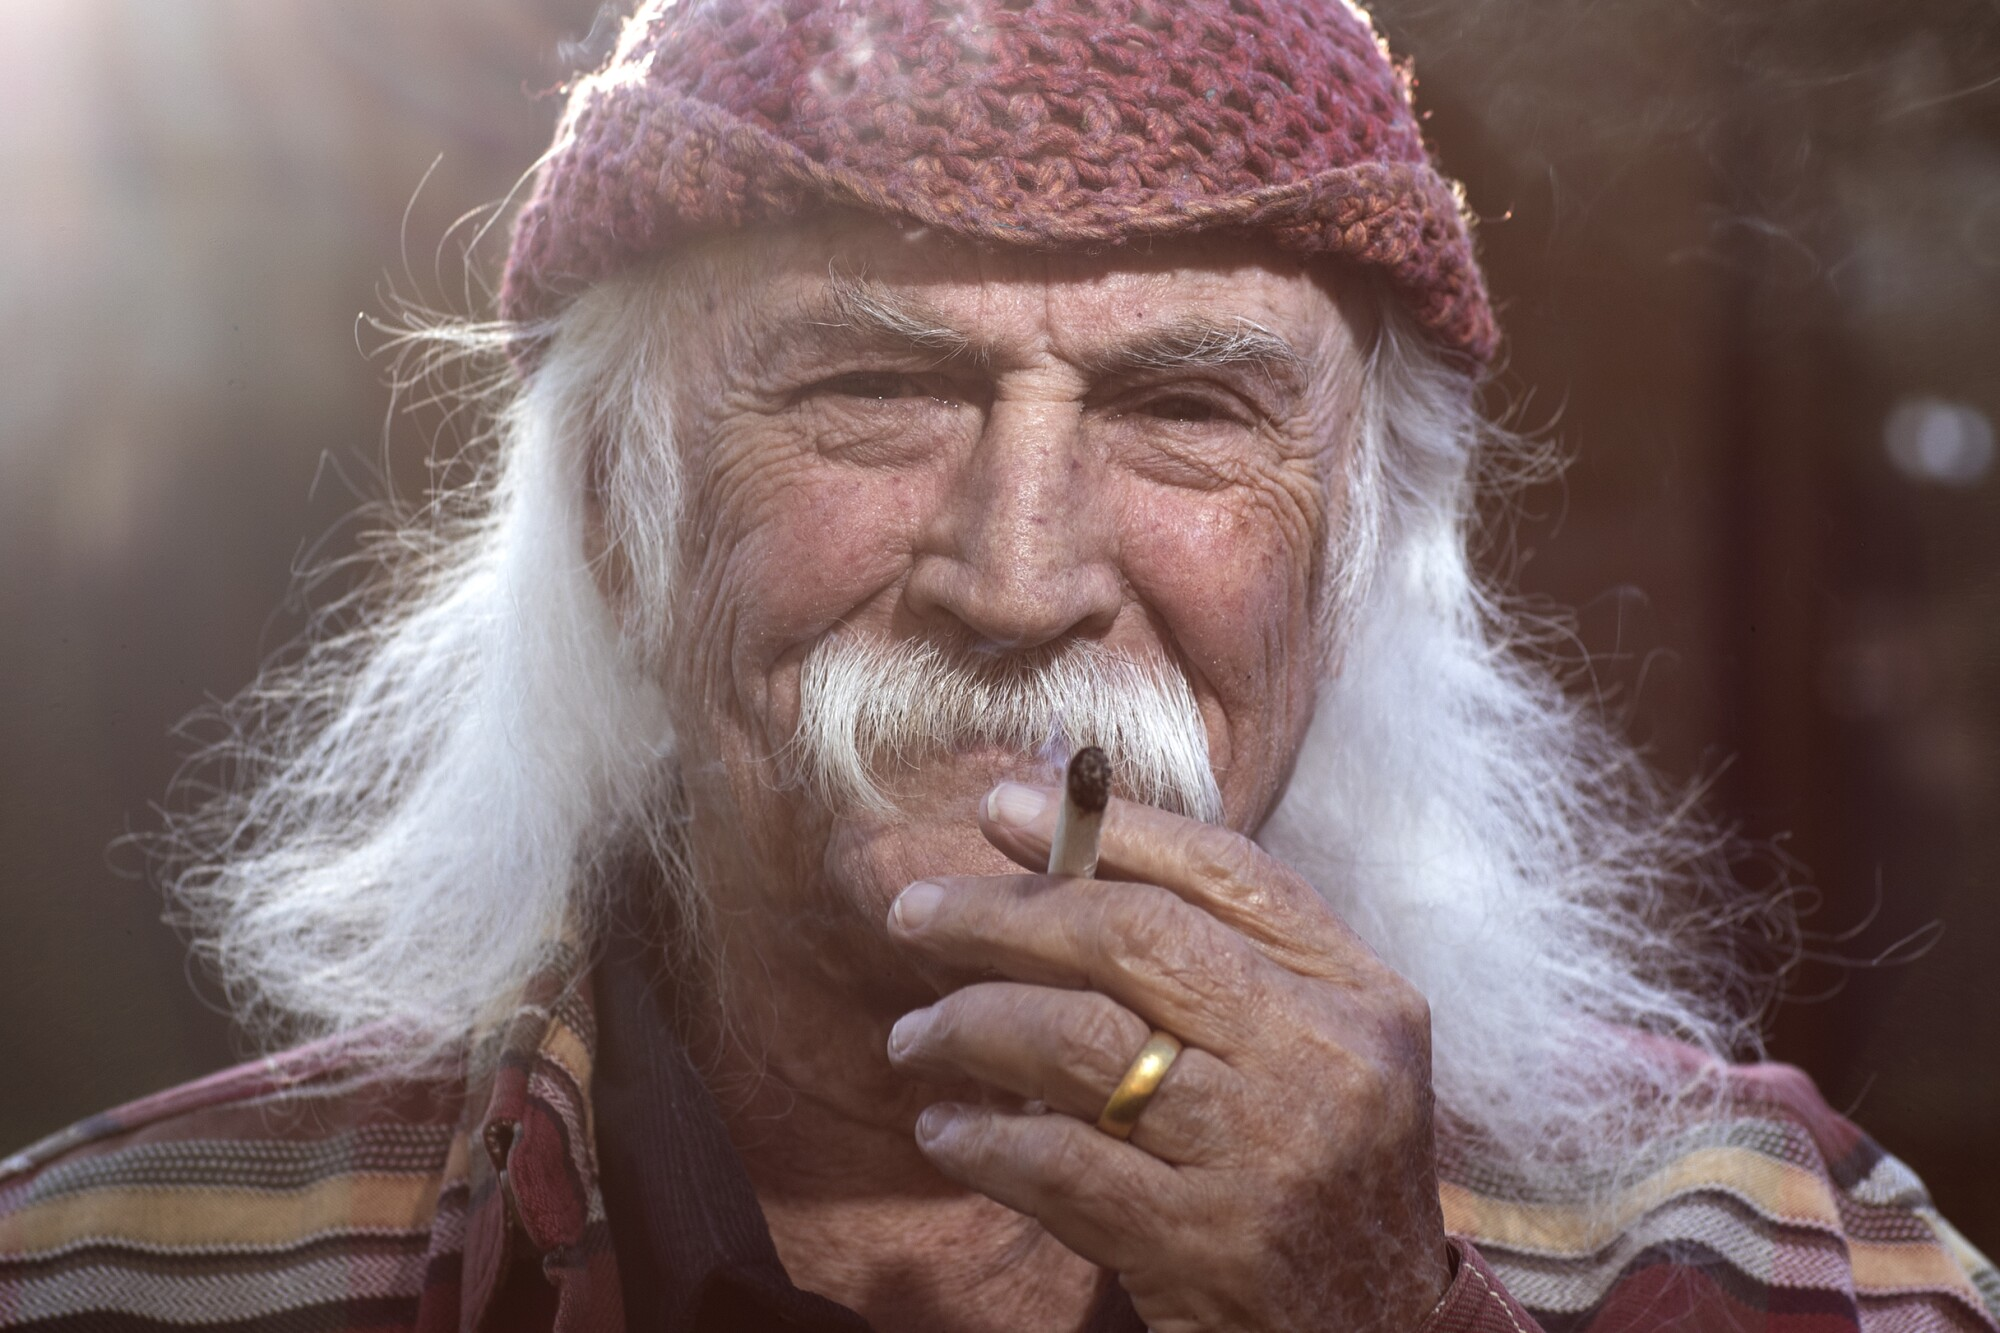 David Crosby at his home in Santa Ynez, Calif.